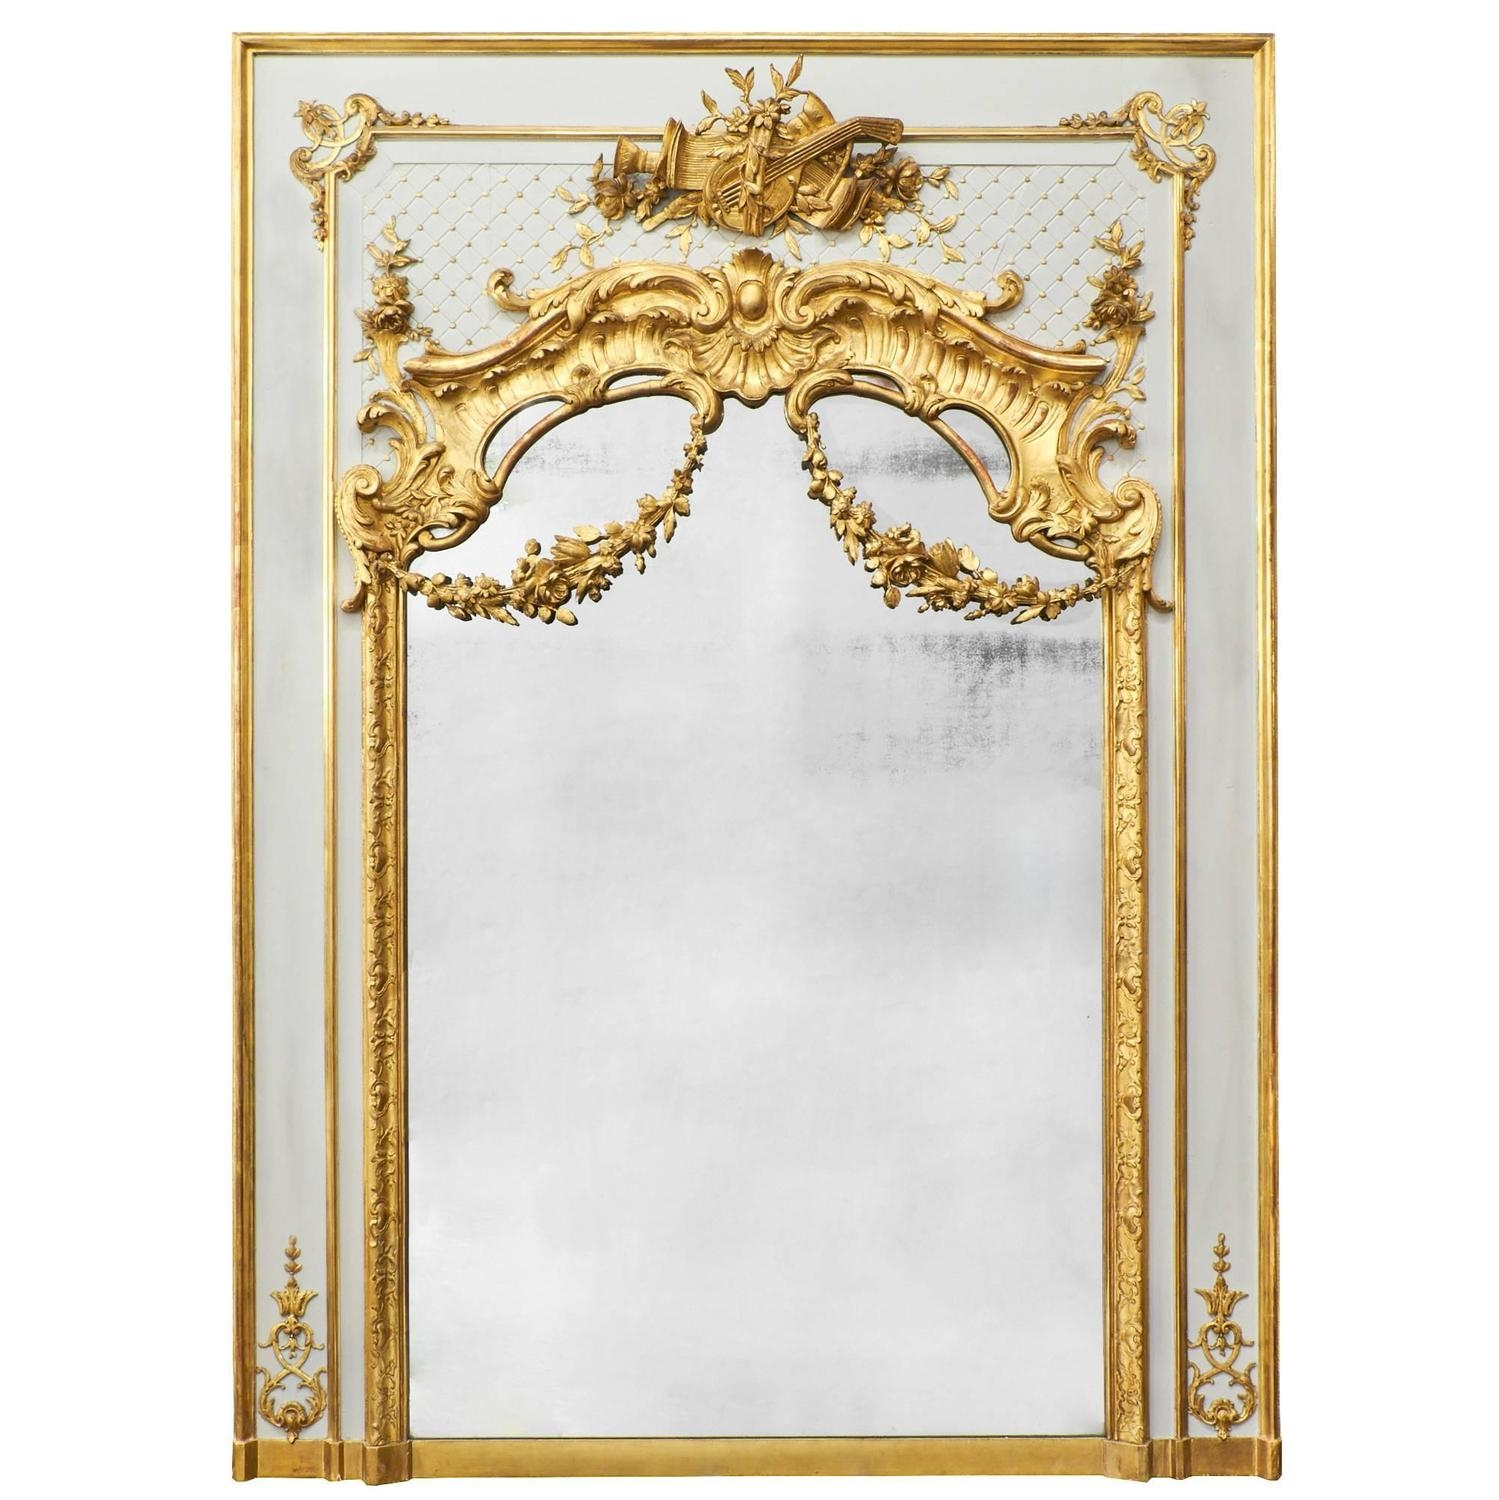 Antique French Louis Xvi Gold Leaf Trumeau For Sale At 1stdibs With Regard To French Gold Mirror (Image 4 of 15)